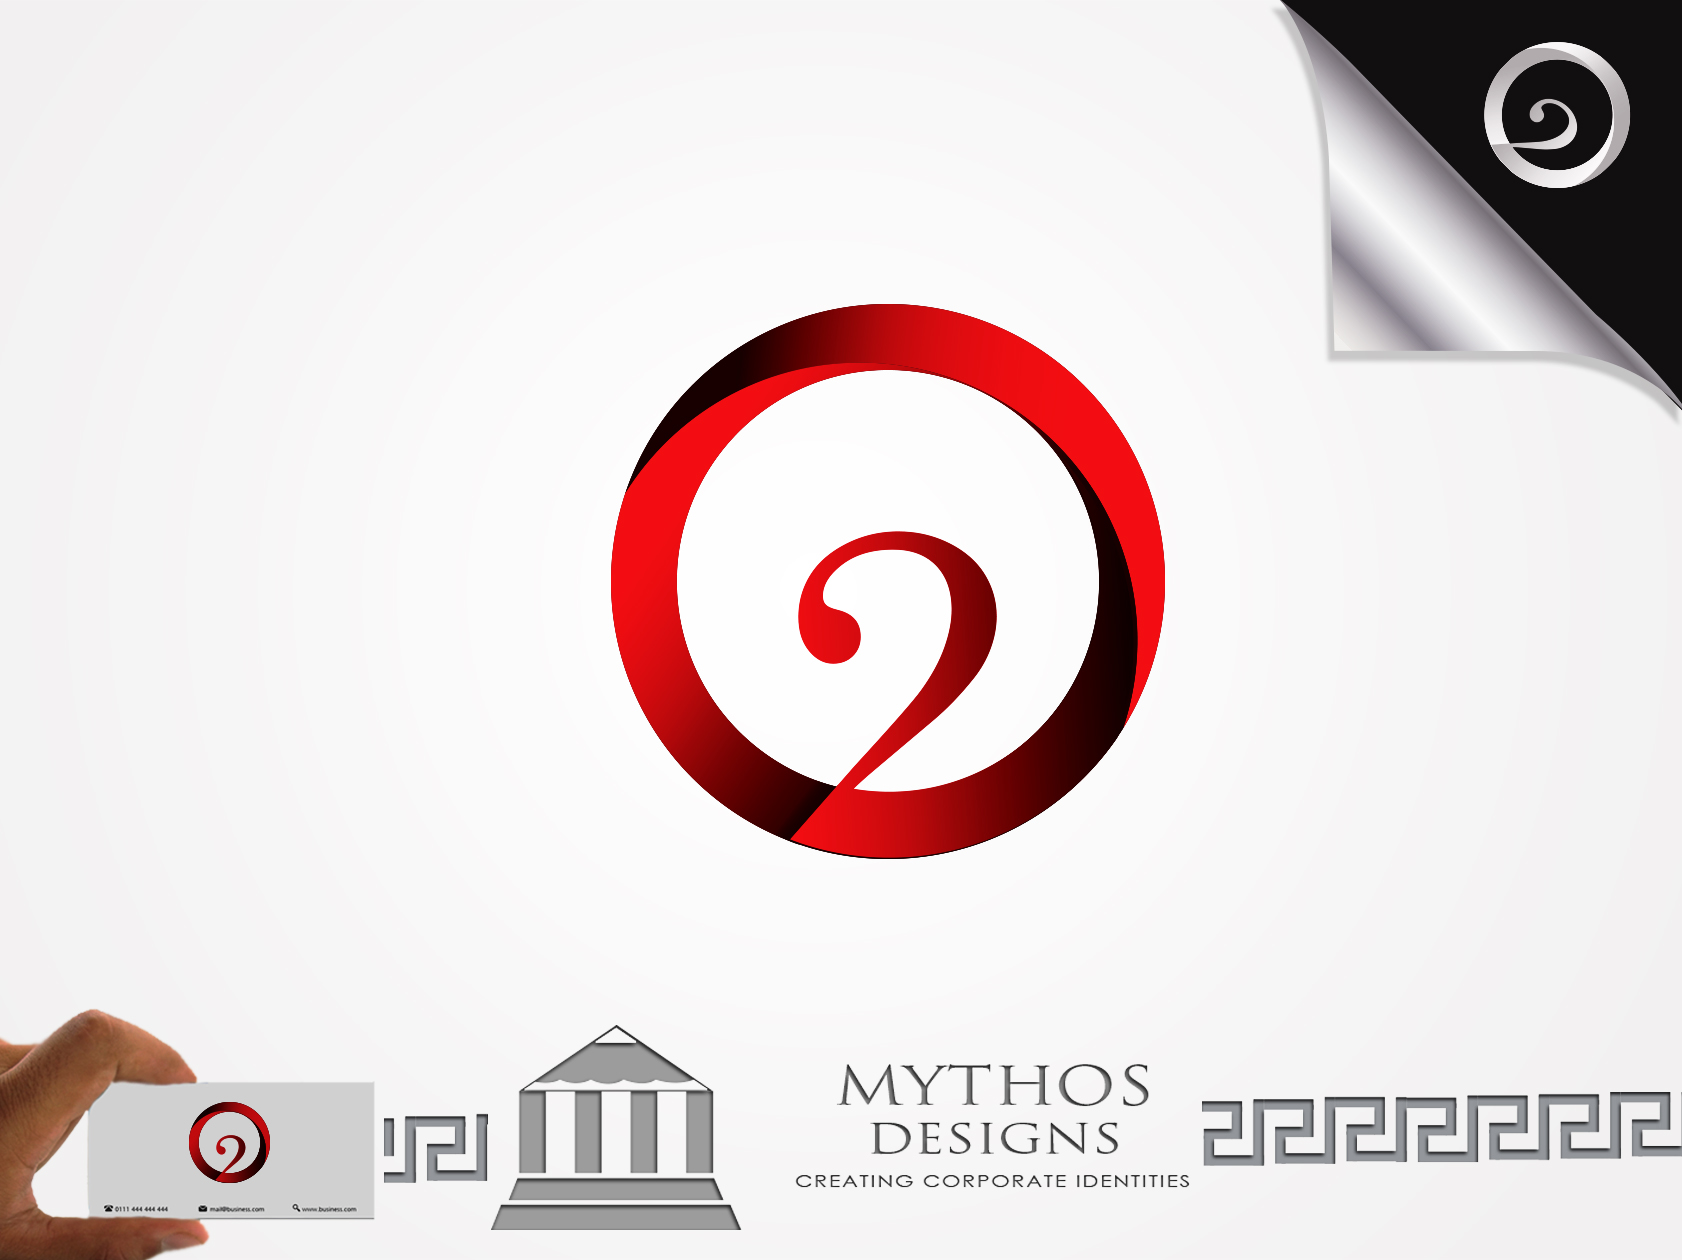 Logo Design by Mythos Designs - Entry No. 24 in the Logo Design Contest Artistic Logo Design for O2.